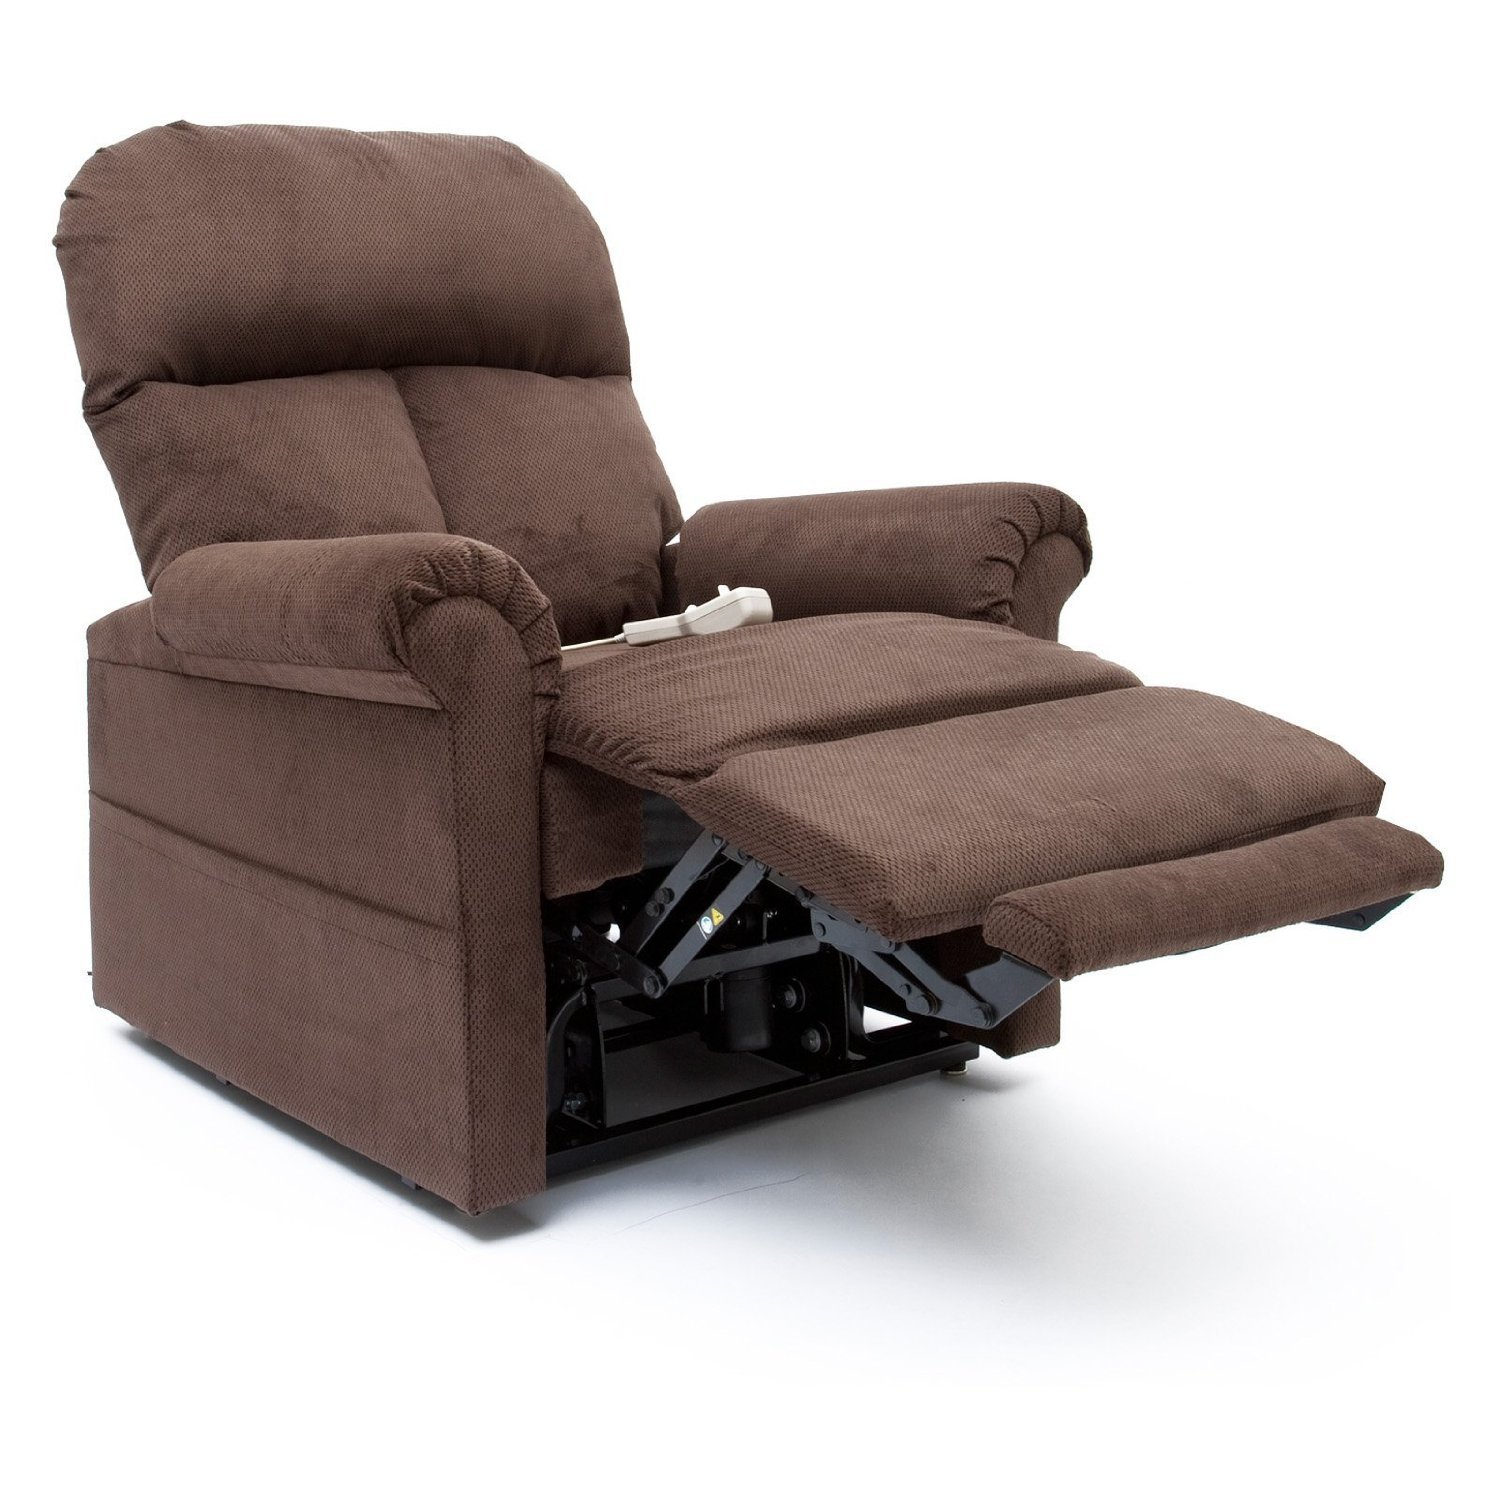 Amazon Infinite Position Lift Chair Recliner LC 100 navy